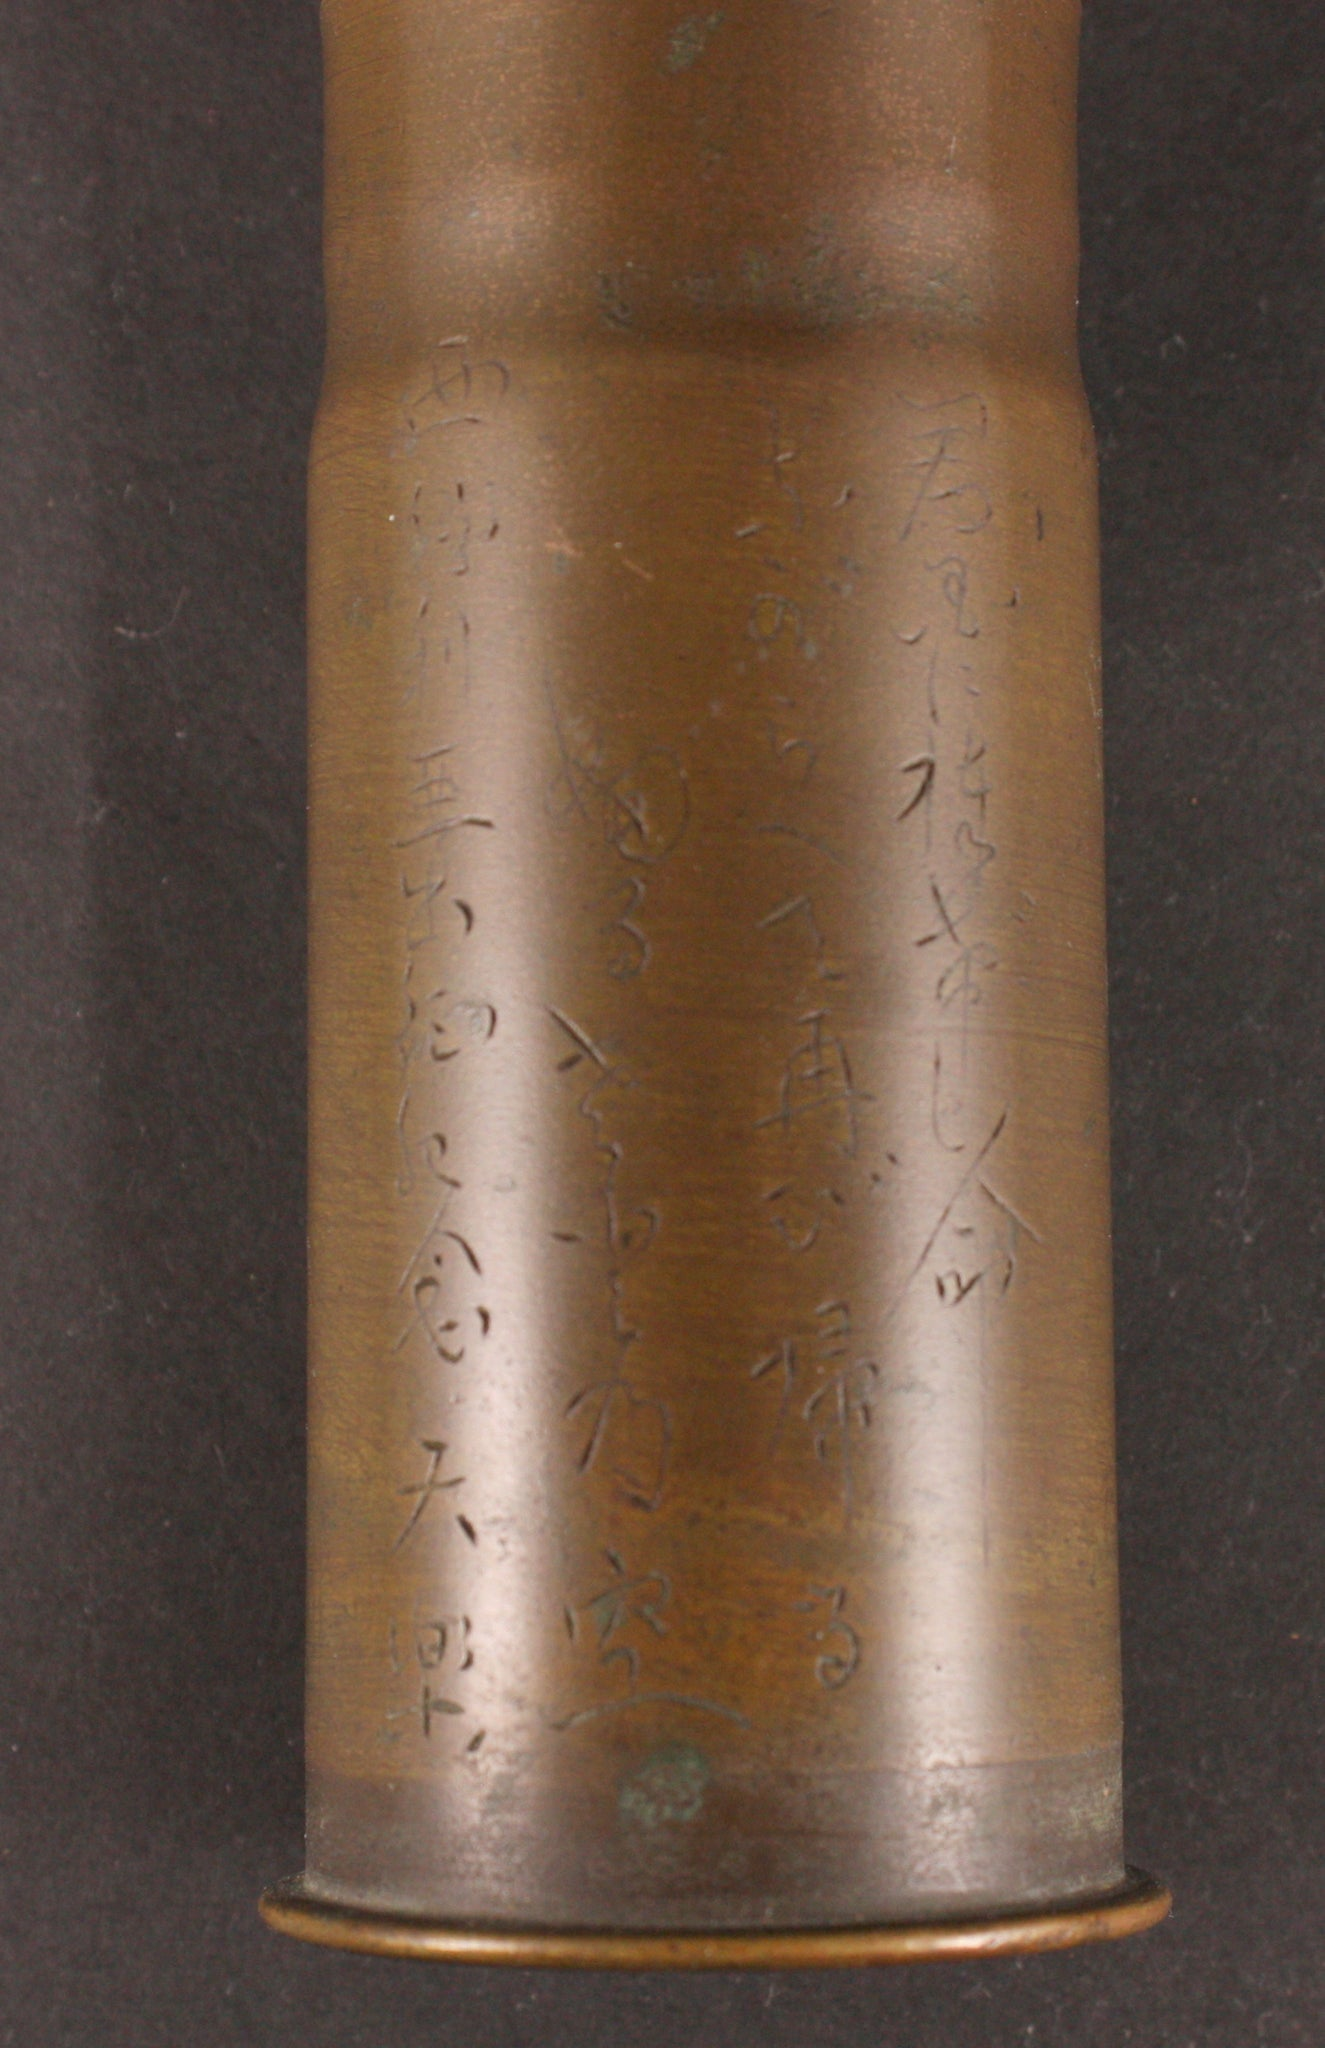 Antique Japanese Military Siberia Intervention Russian Shell Trench Art